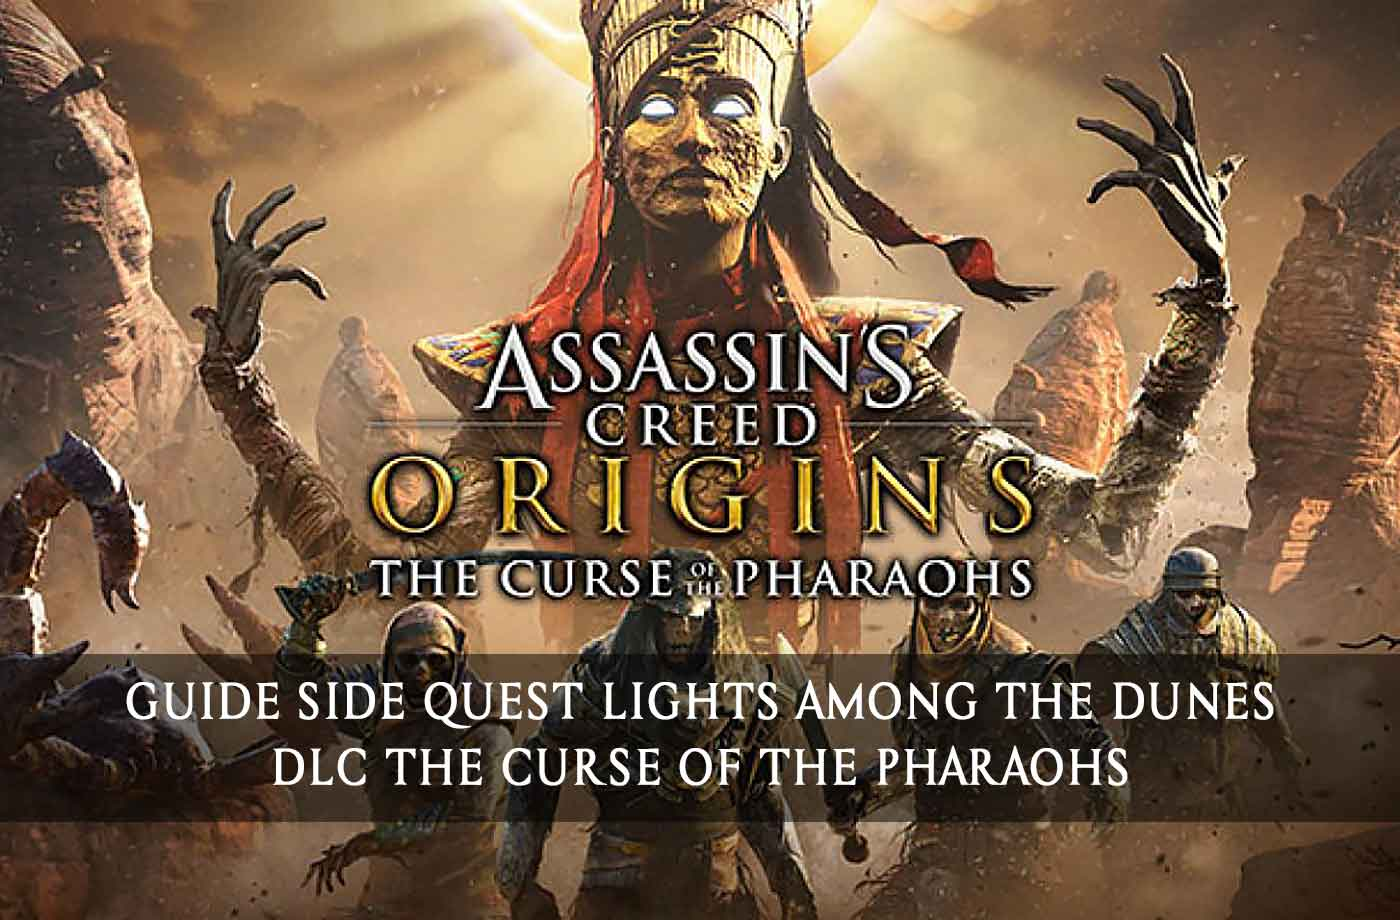 assassins creed origins download apk